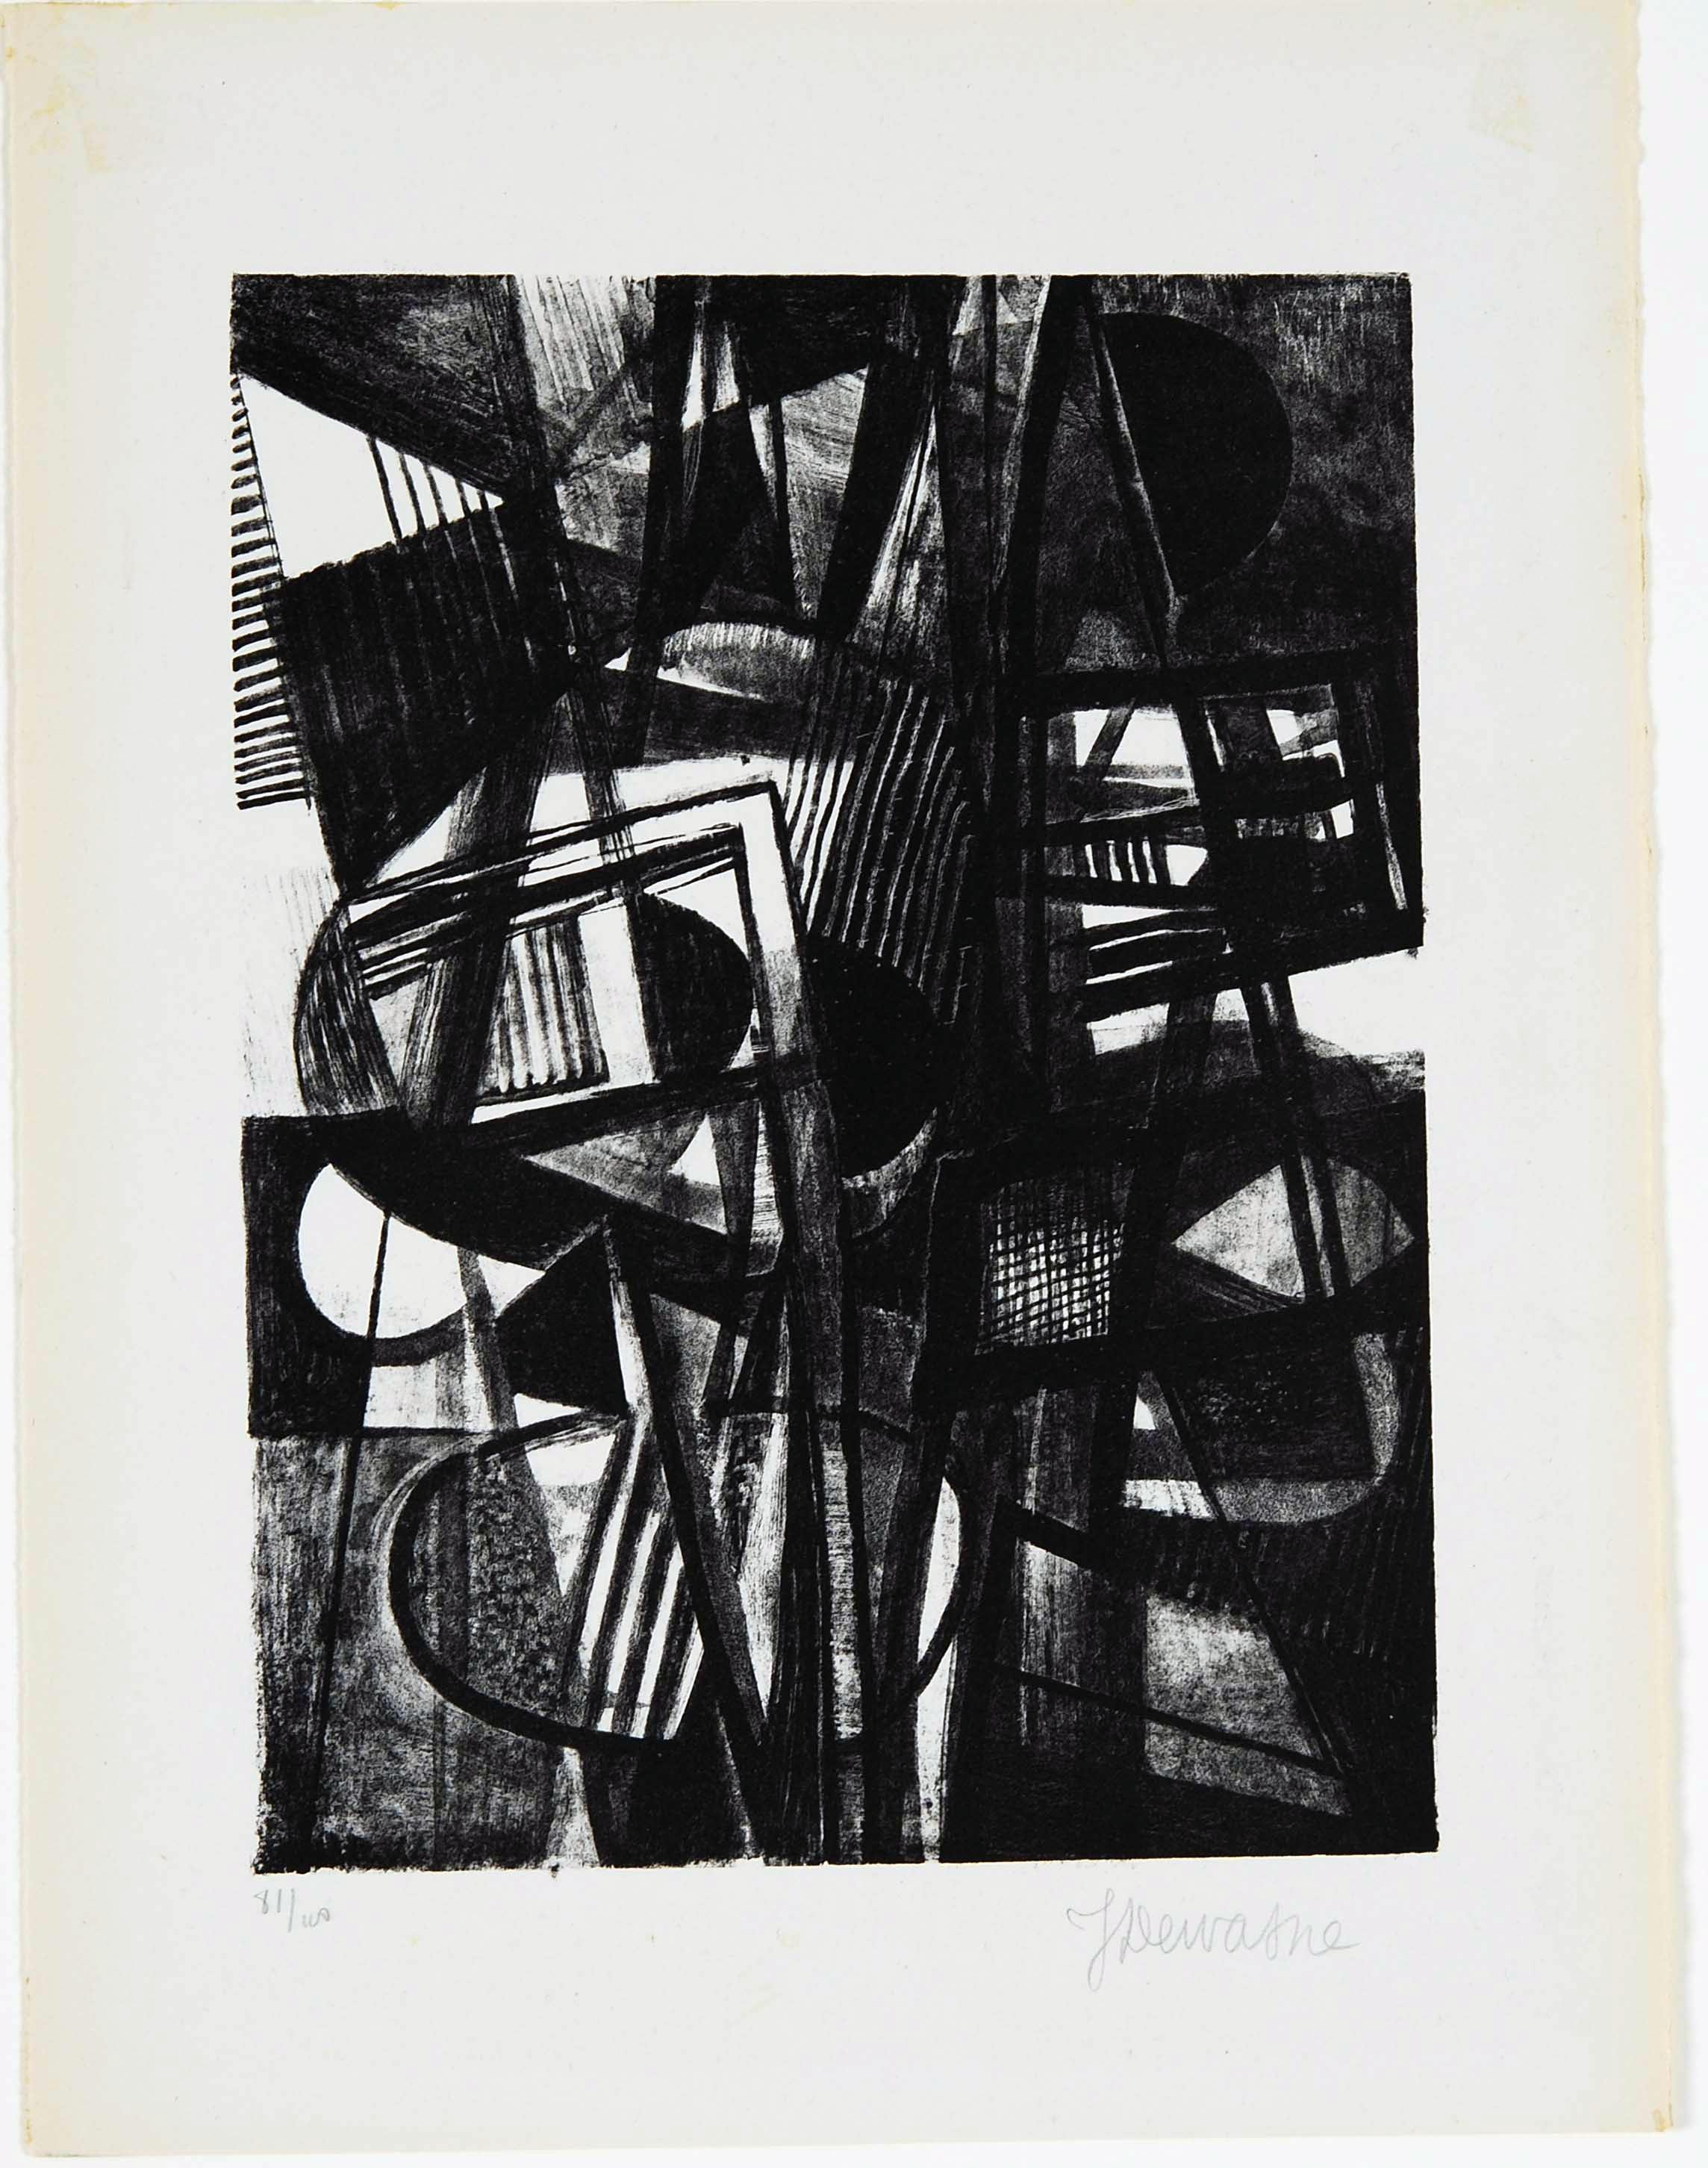 Jean Dewasne, Composition, 1946